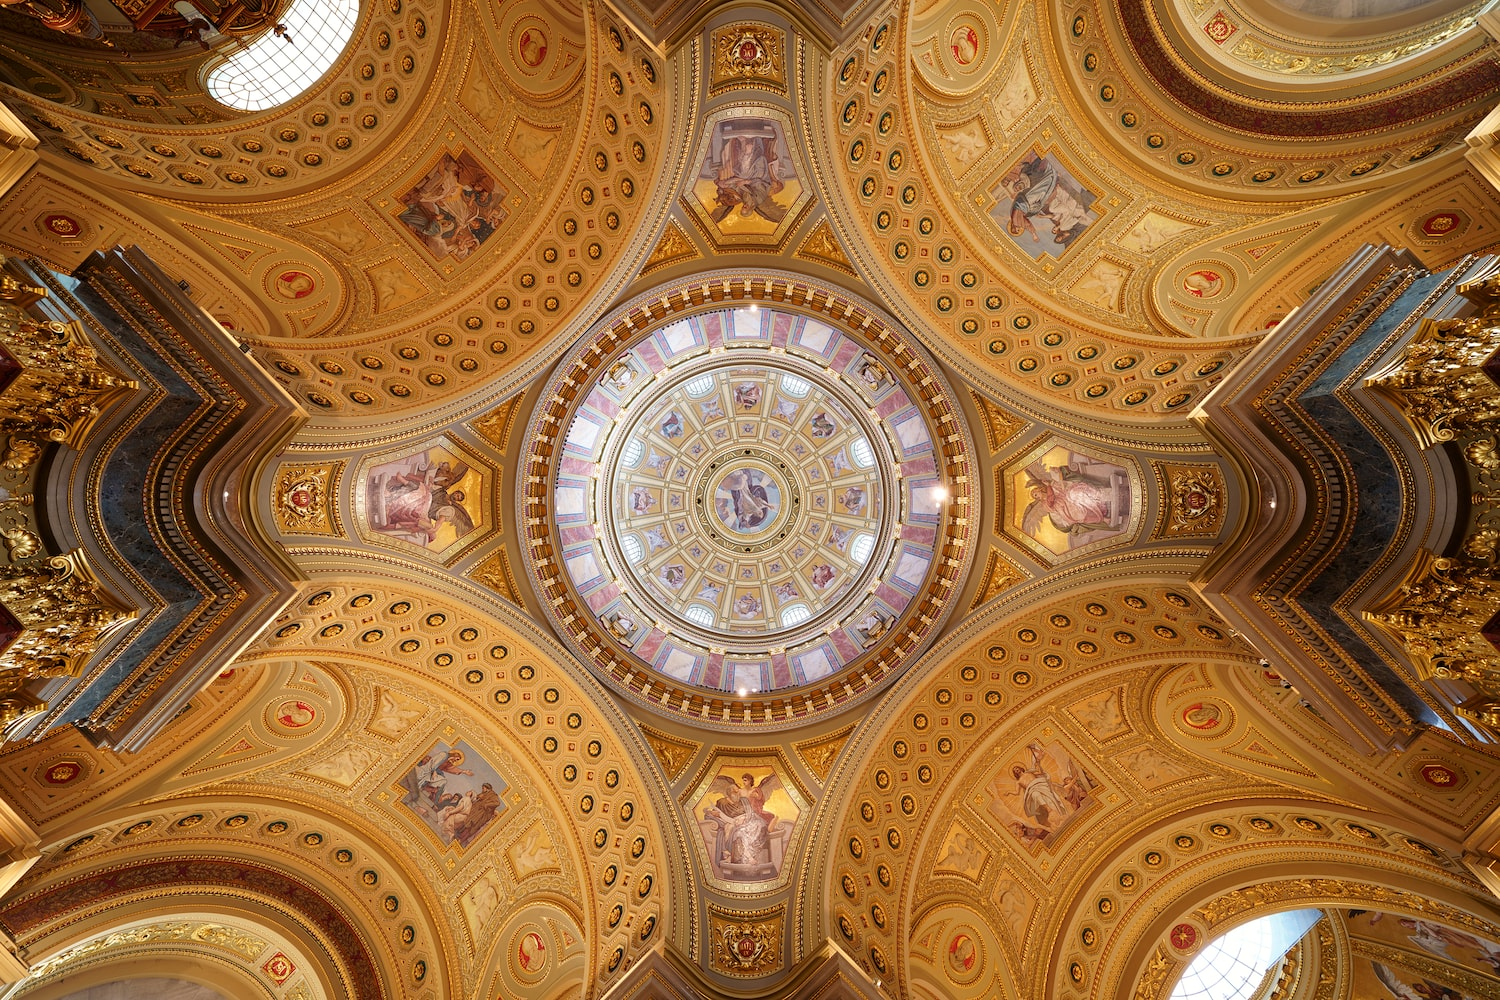 golden-ceiling-in-details-alpha-7RIV